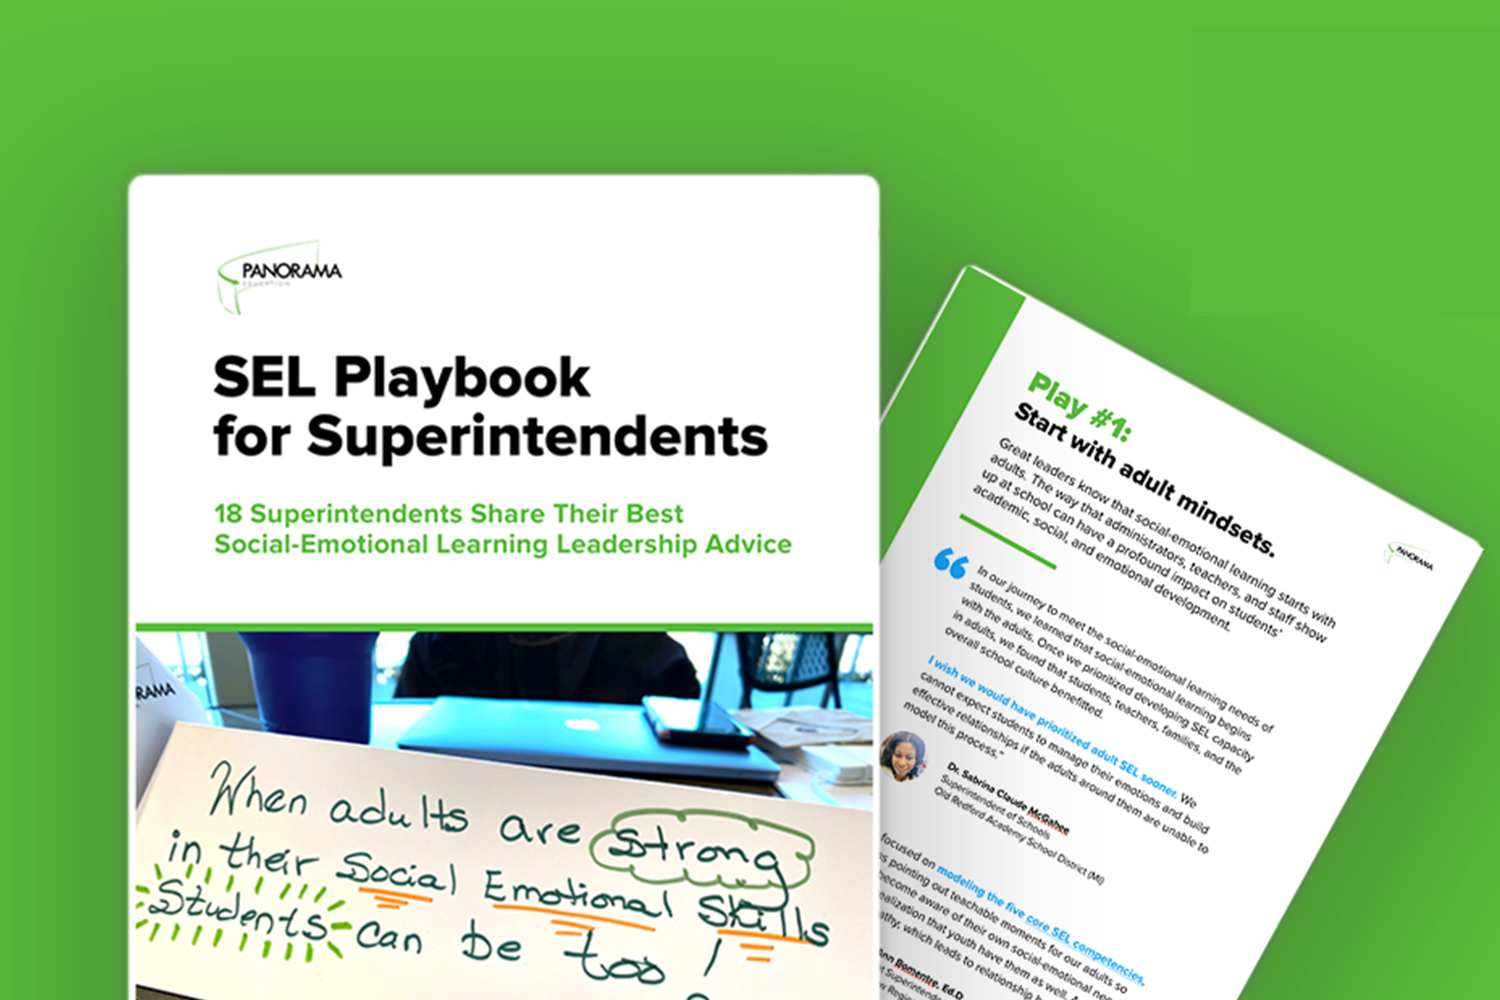 sel-playbook-supt-ft-resource